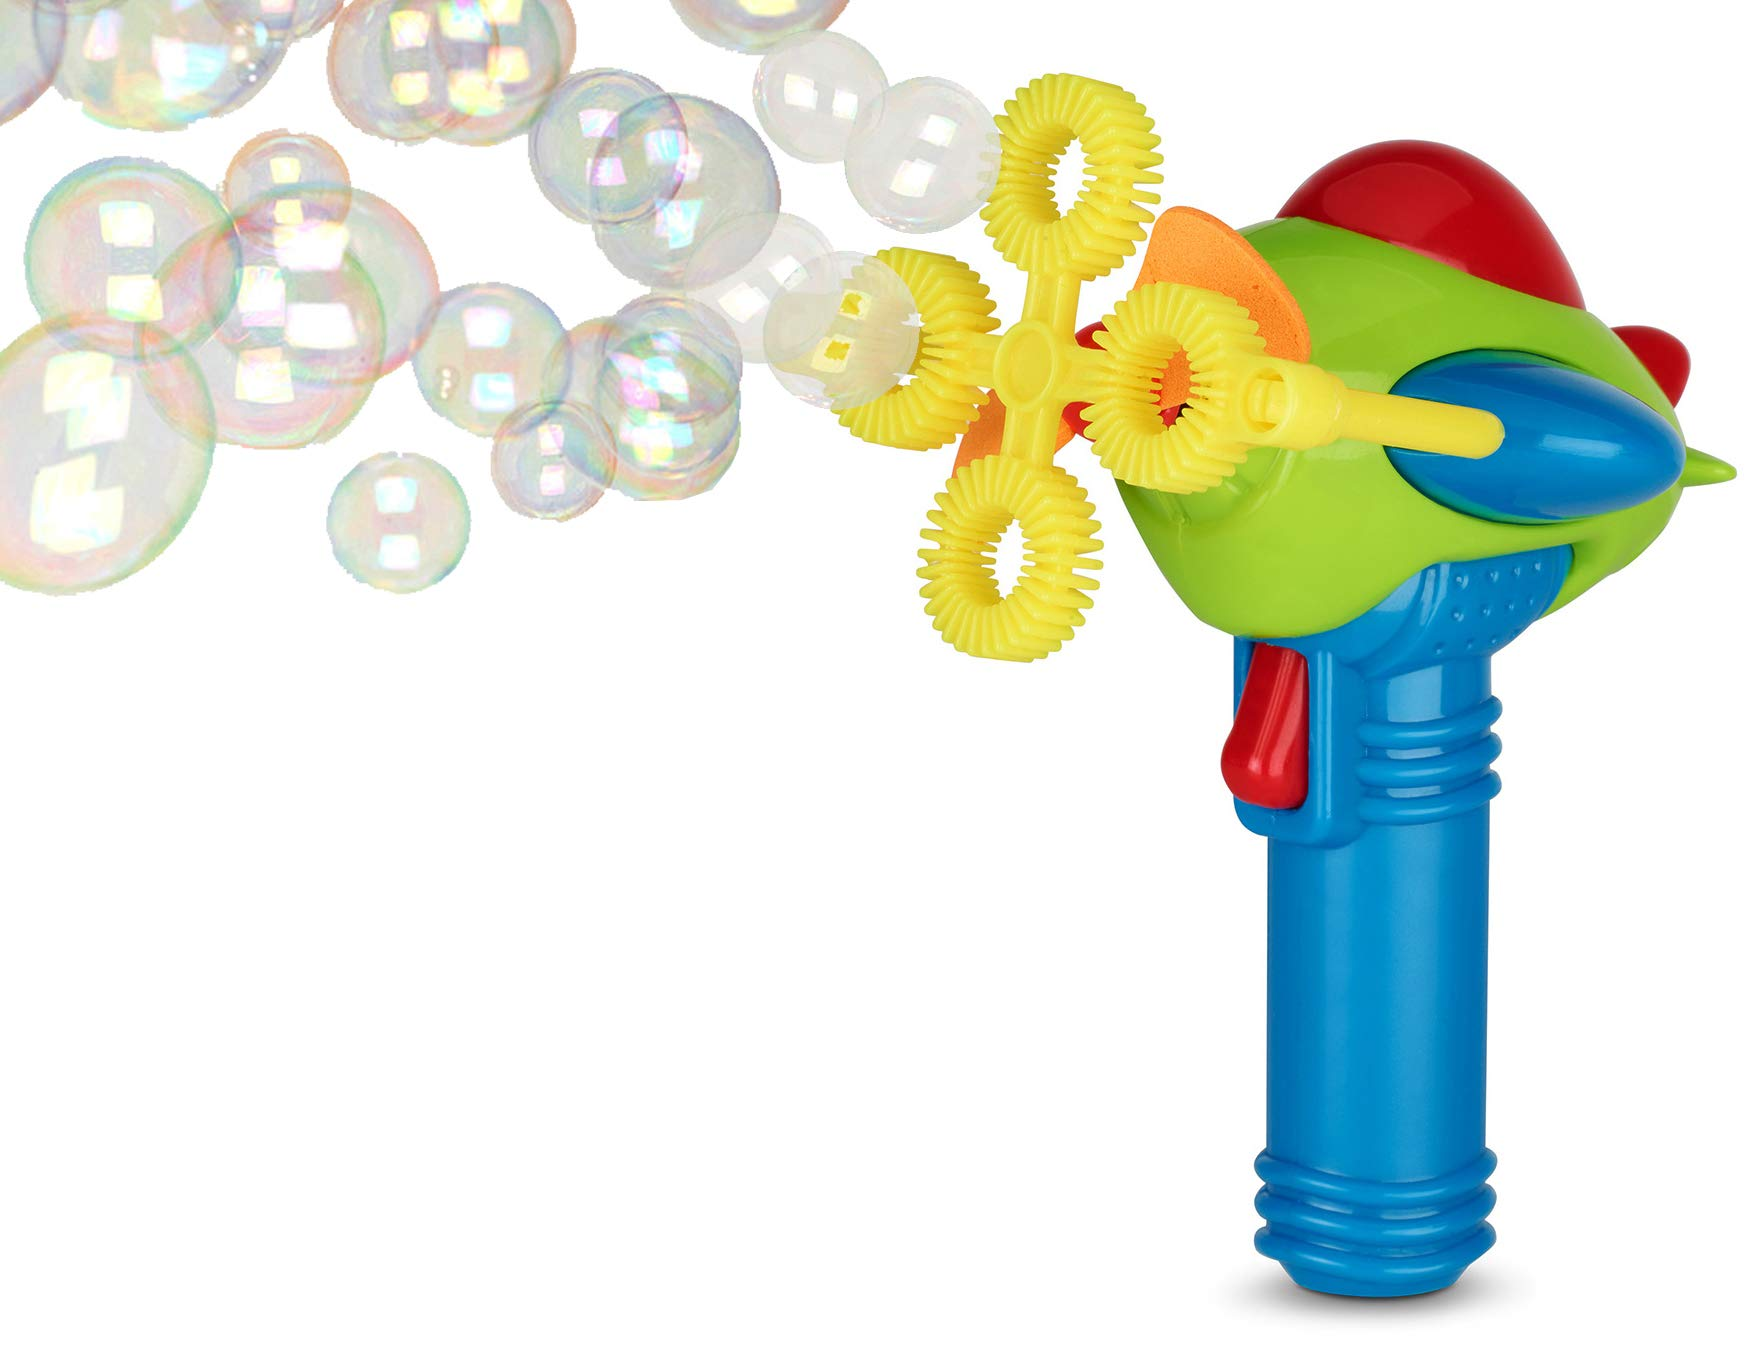 BAMGO Bubble Gun Blower for Kids (Boys & Girls) - Dip&Press | Toy Blaster with Soap Solution | 4 Wands Futuristic Shooter | Fun, Colorful, Indoor & Outdoor | Leak-Resistant | Parents & Toddlers